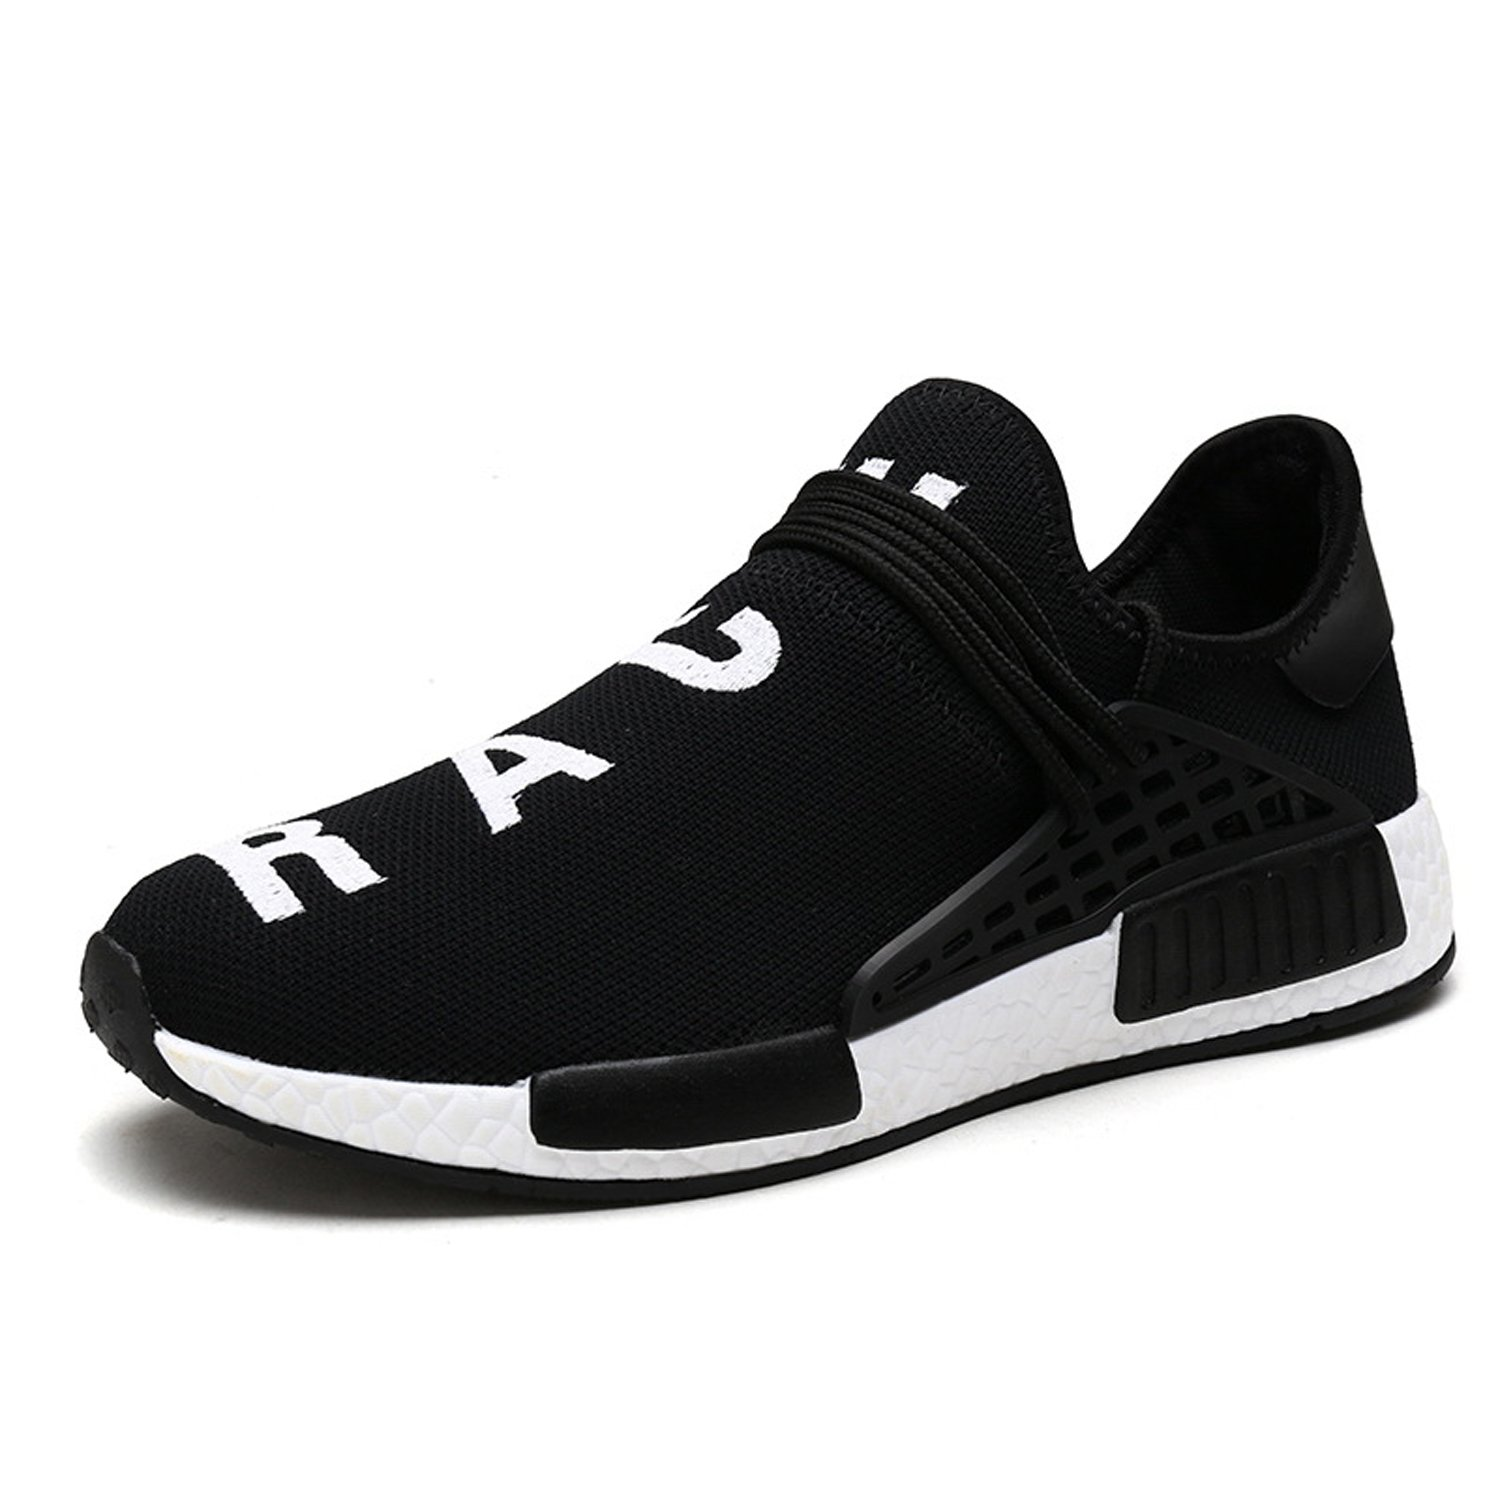 AI Aleng Mens Womens Unisex Lightweight Fashion Sneakers Breathable Lace-up Athletic Sports Shoes Human Race Casual Running Shoes B074RGFJQX Women 11 D(M) US /Men 10 D(M) US|Black